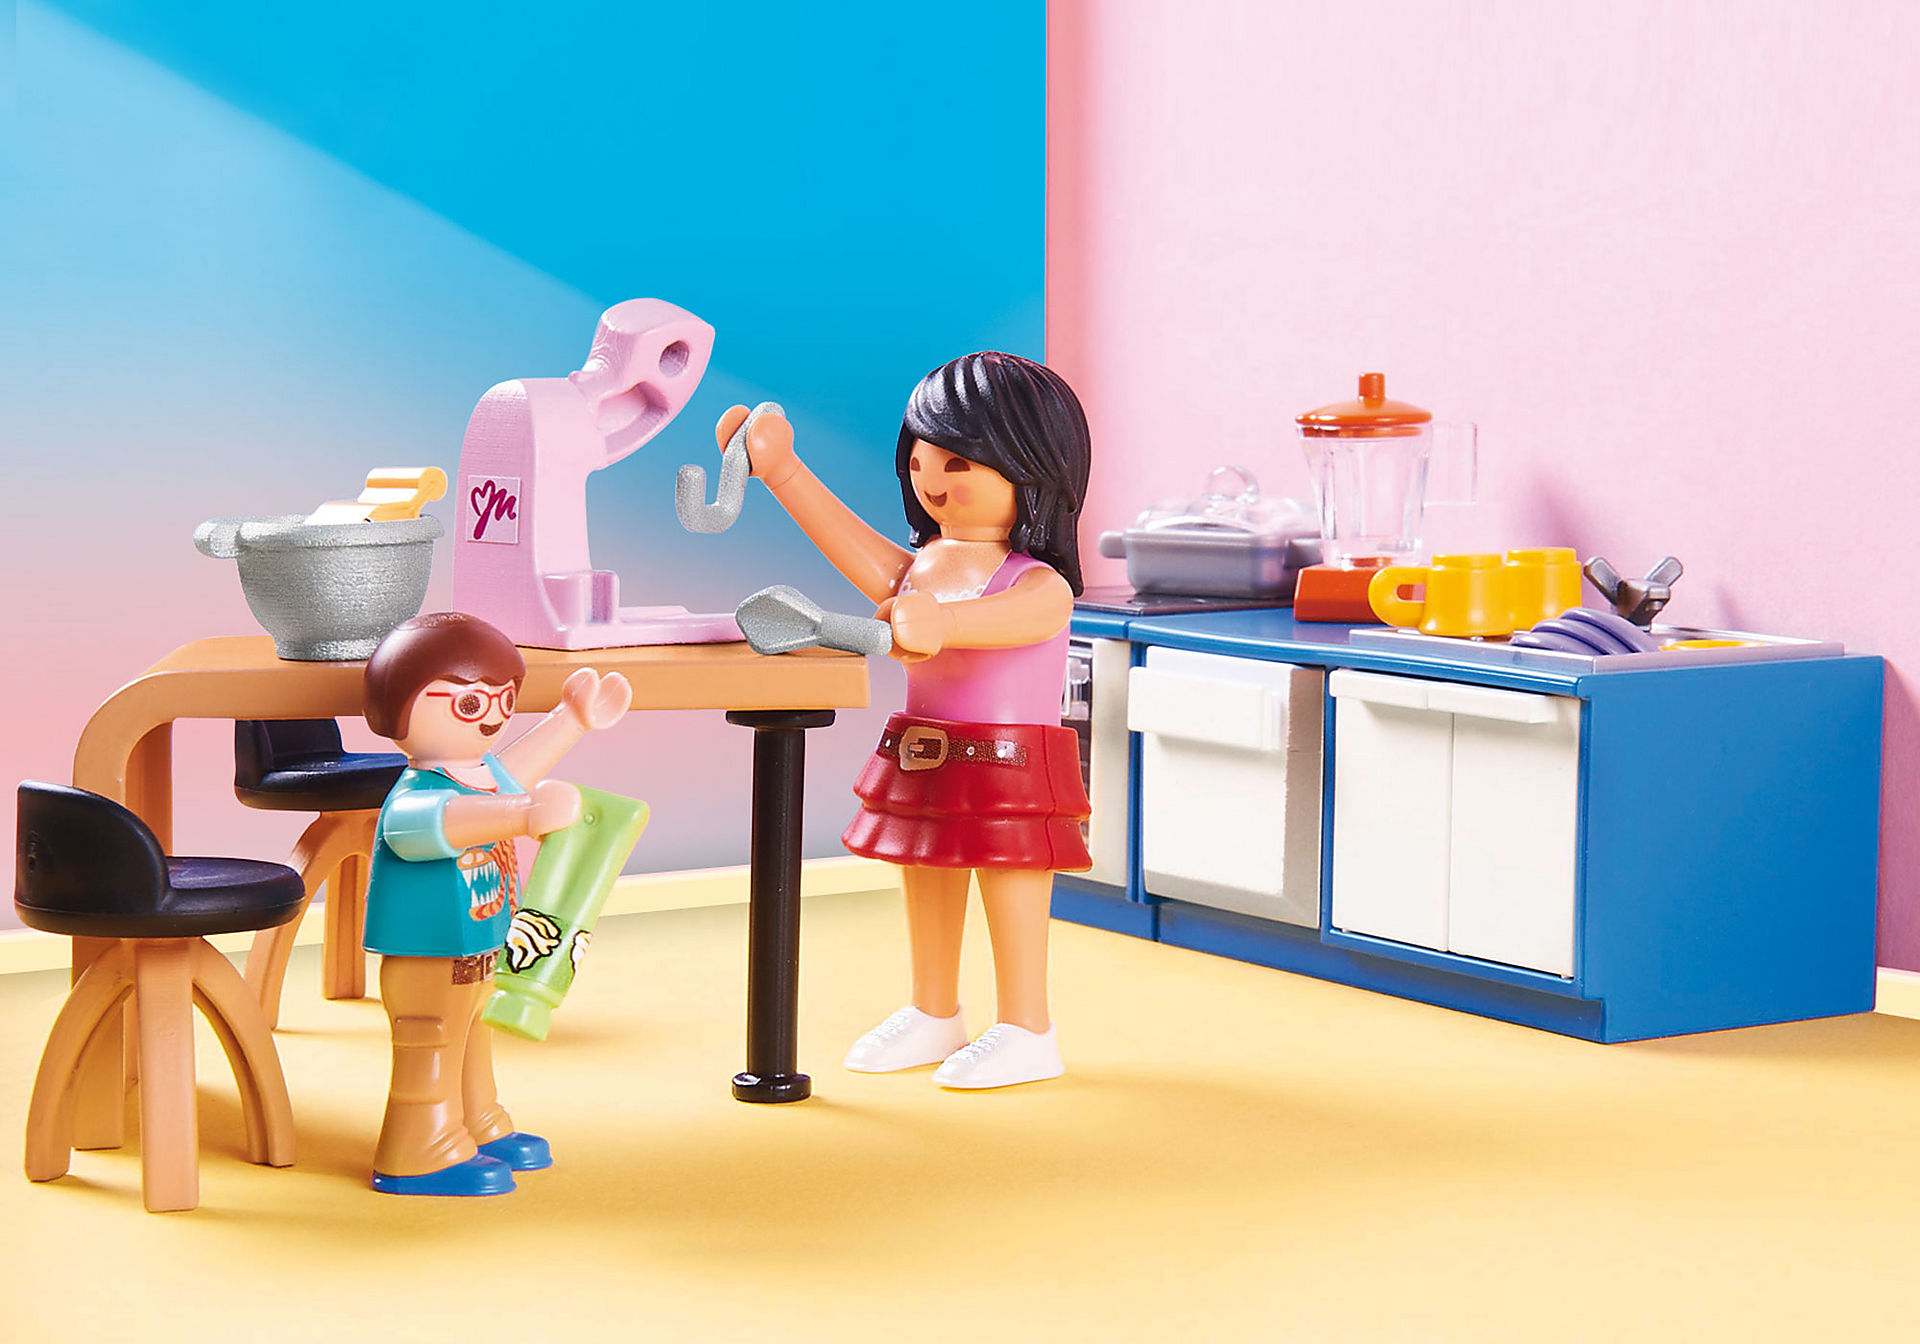 70206 Family Kitchen zoom image4